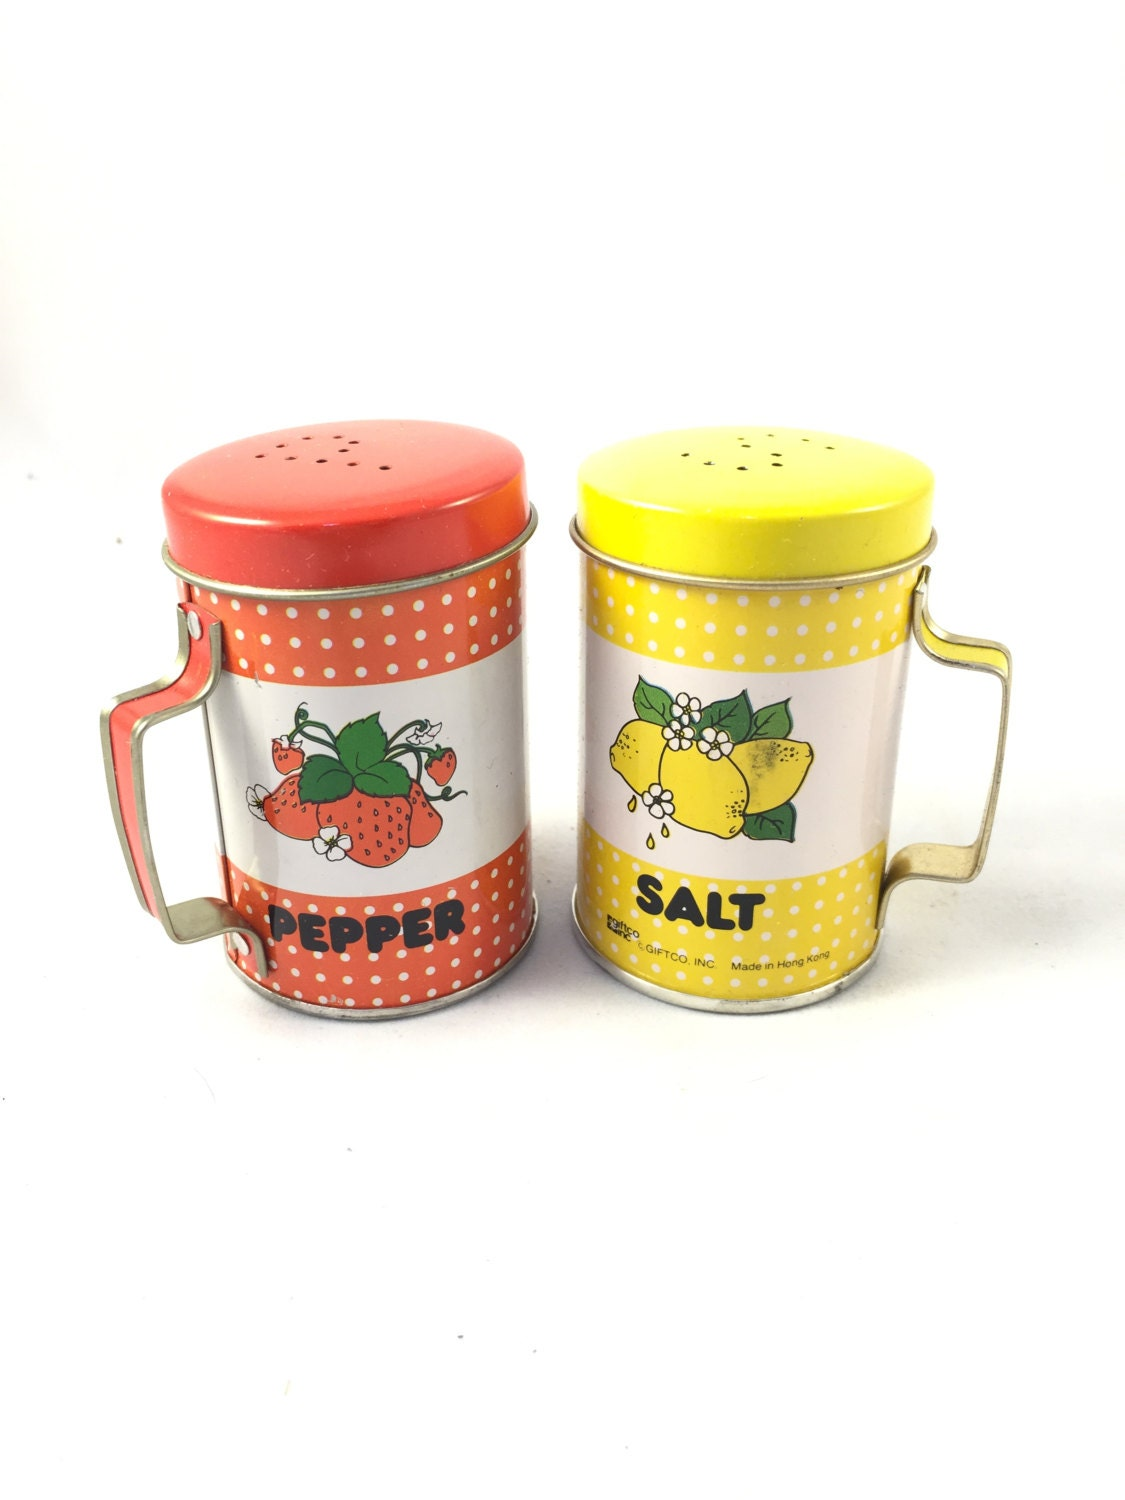 1985 metal colorful fruit salt and pepper shakers with handles Colorful salt and pepper shakers